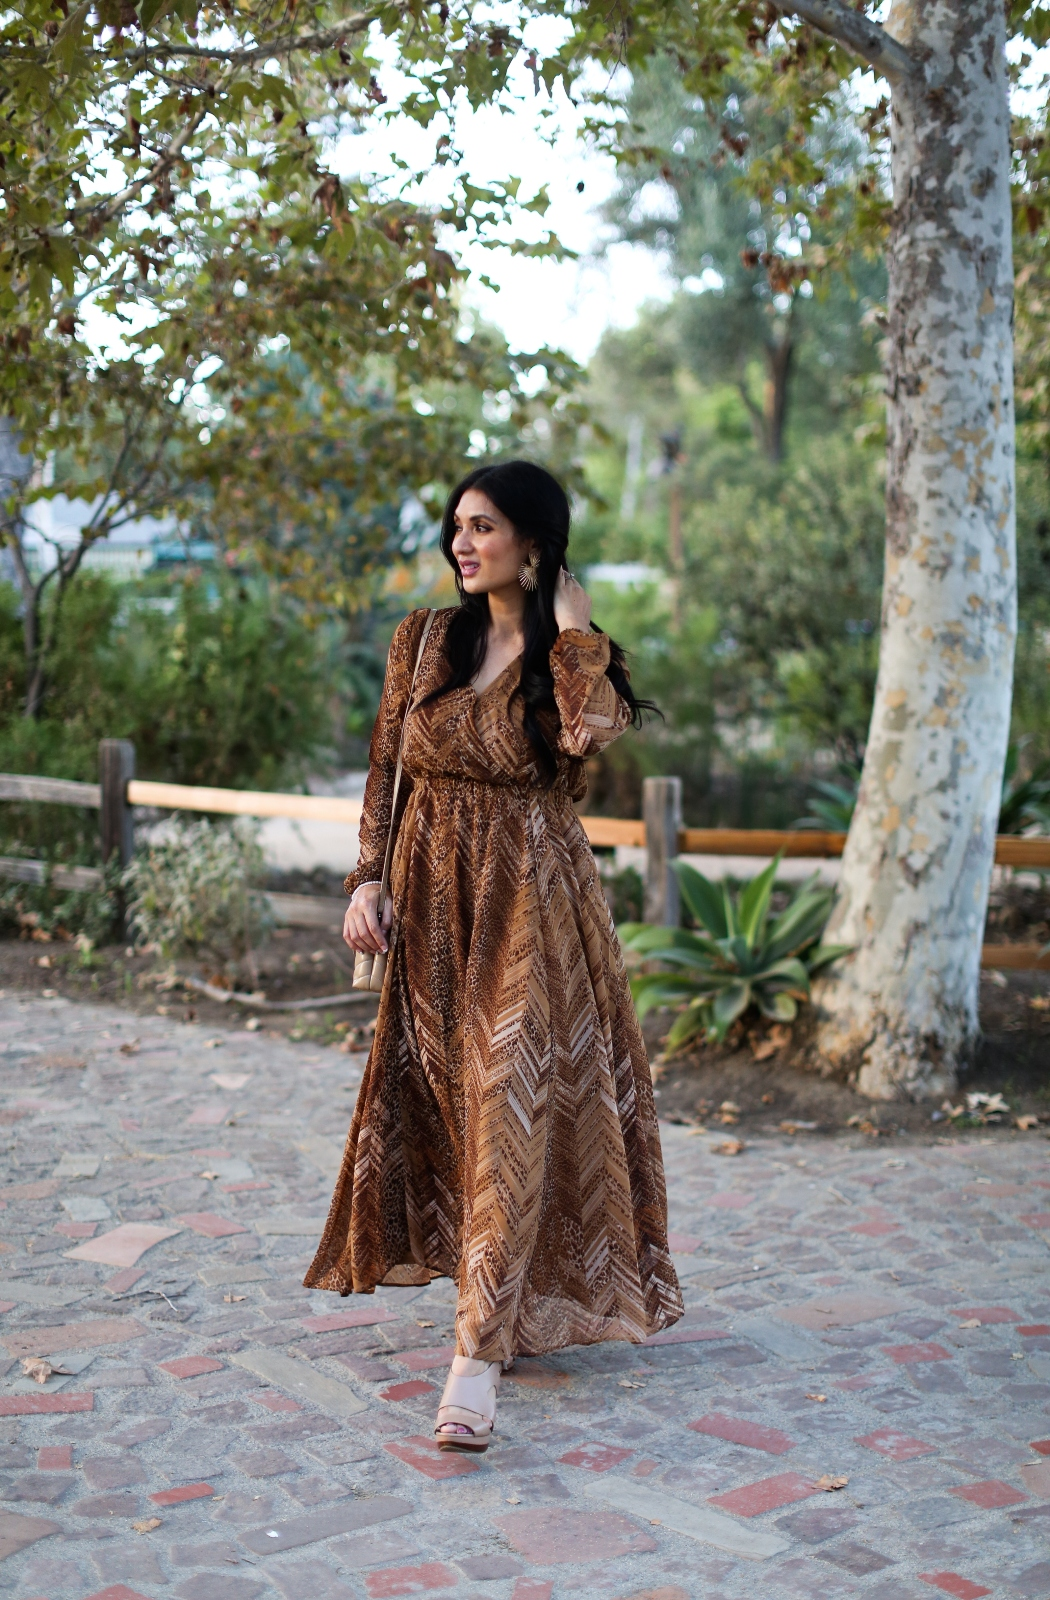 Debbie Savage Orange County California Fashion Blogger Adyson Parker V-Neck Long Sleeve Print Dress Brown Dresses for Fall